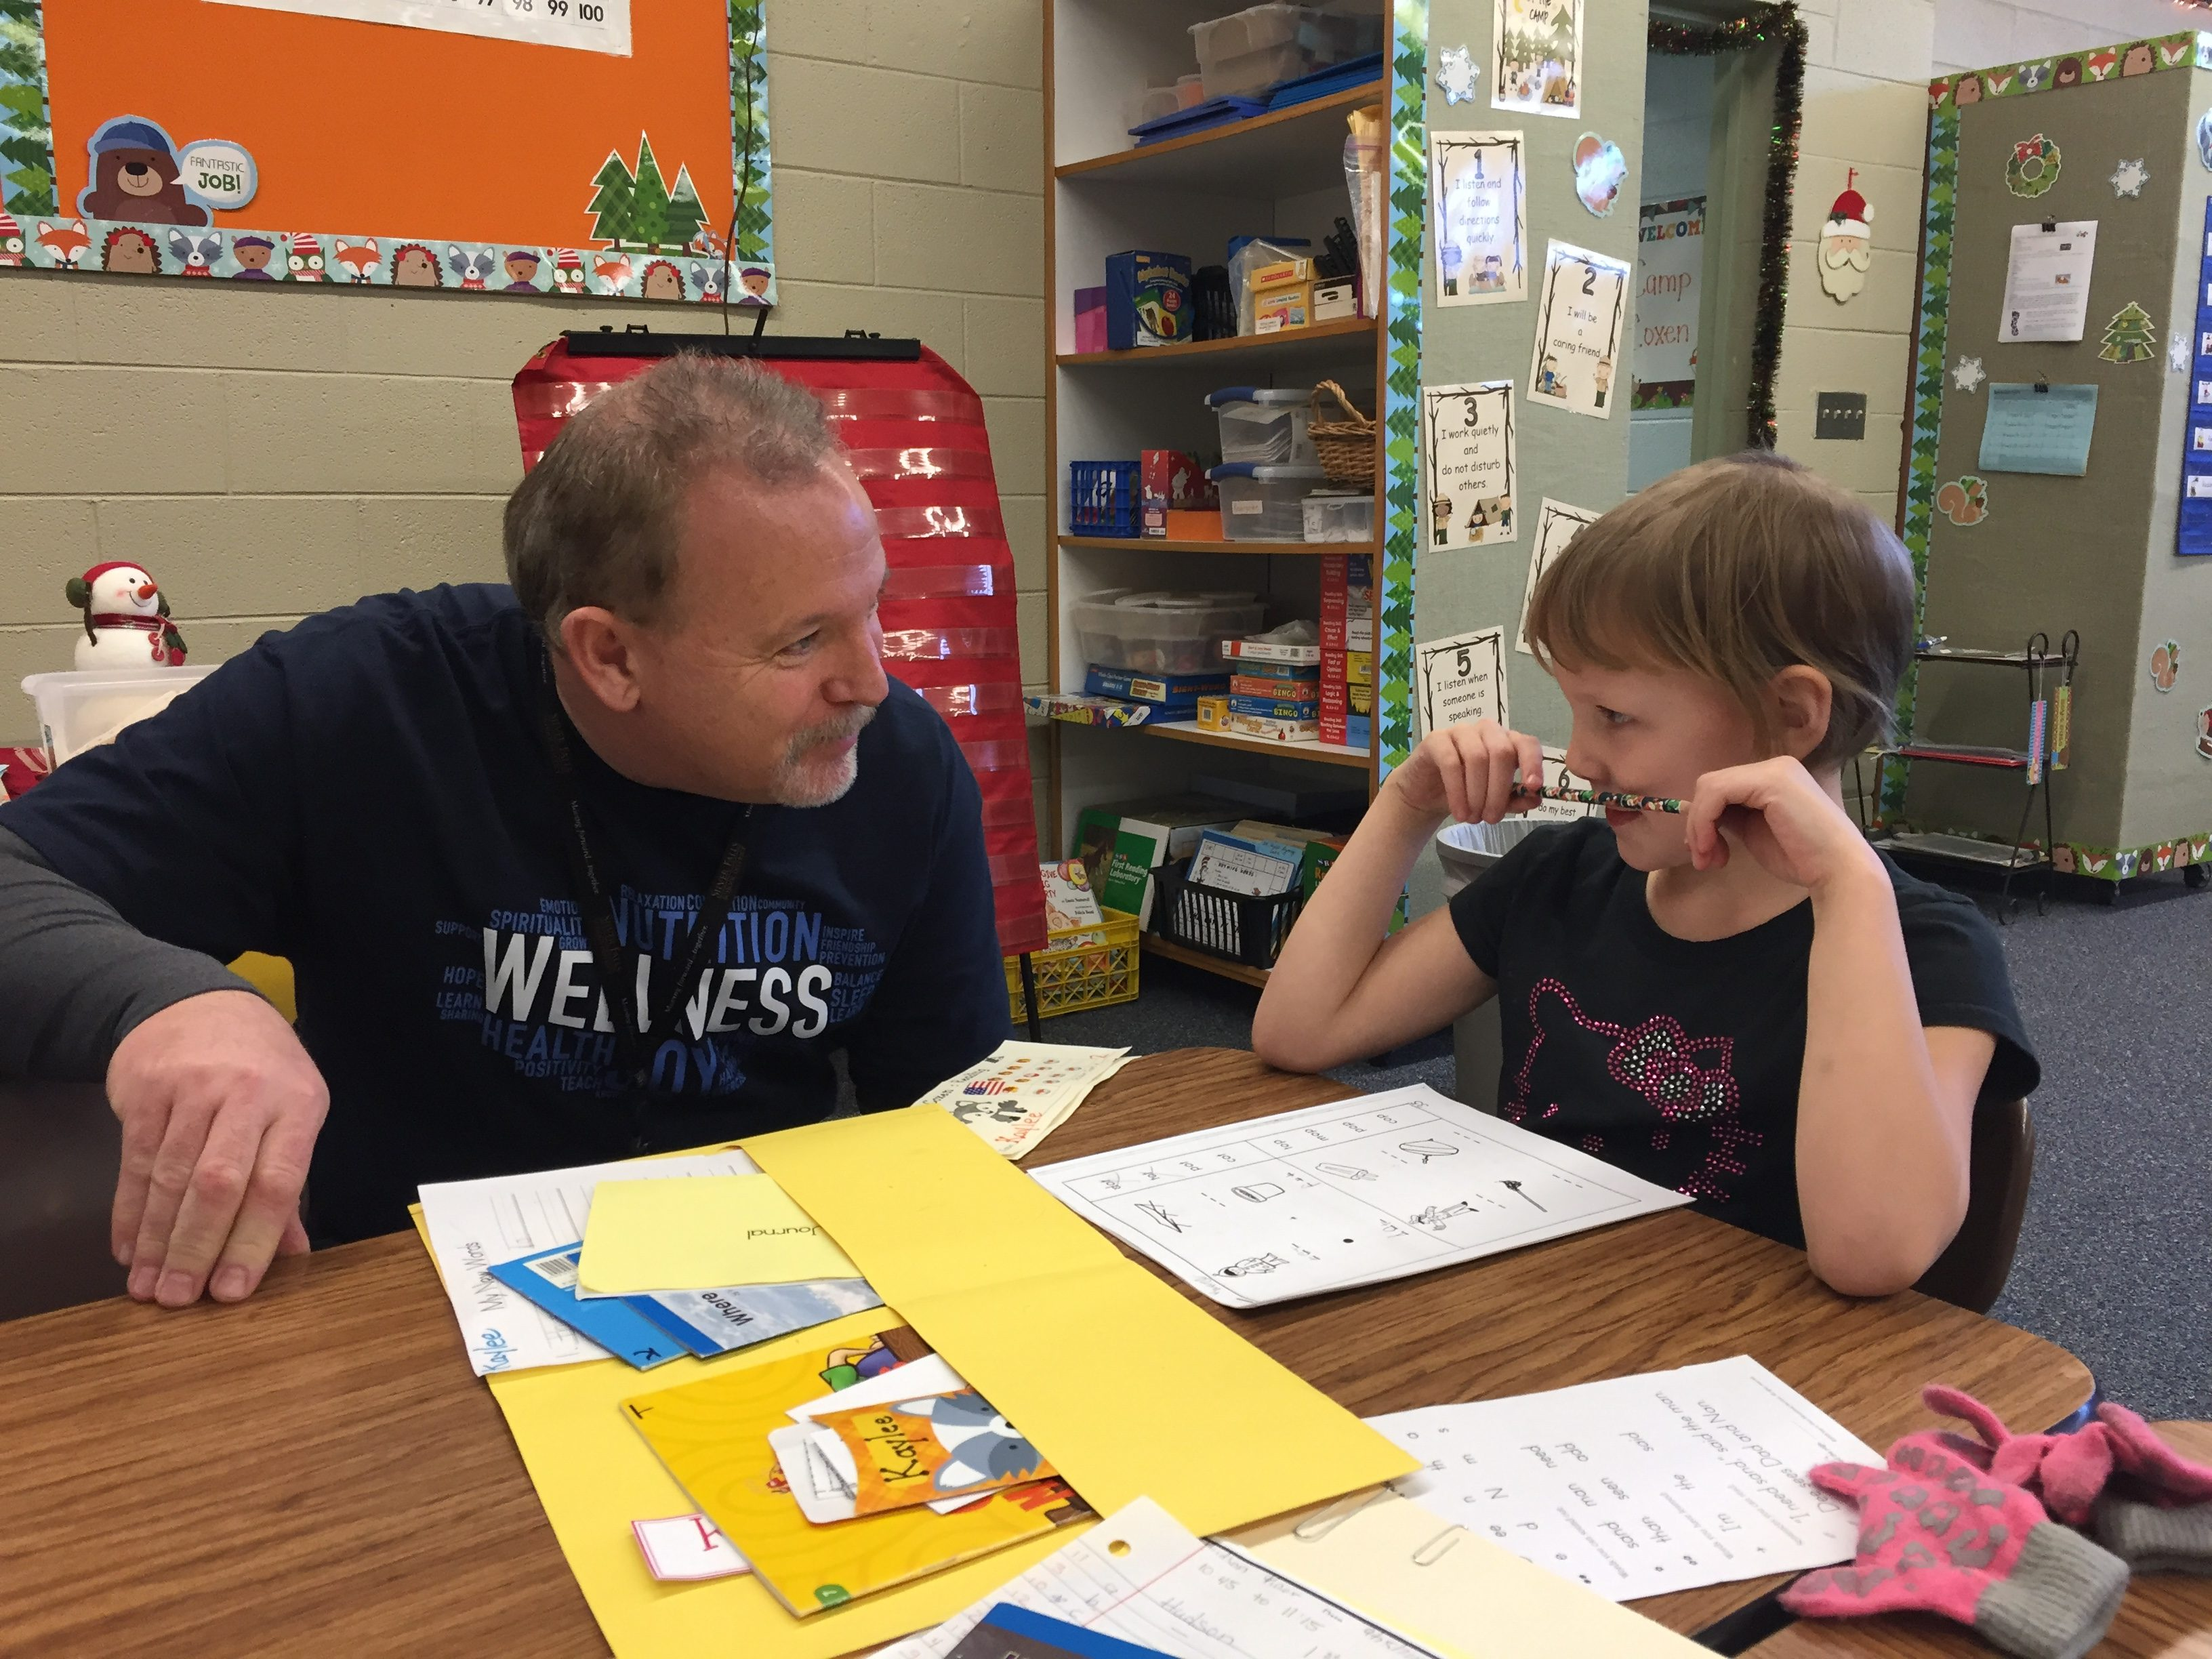 Superintendent Andy Belando checks in with students during reading activities at Mark Twain Elementary.